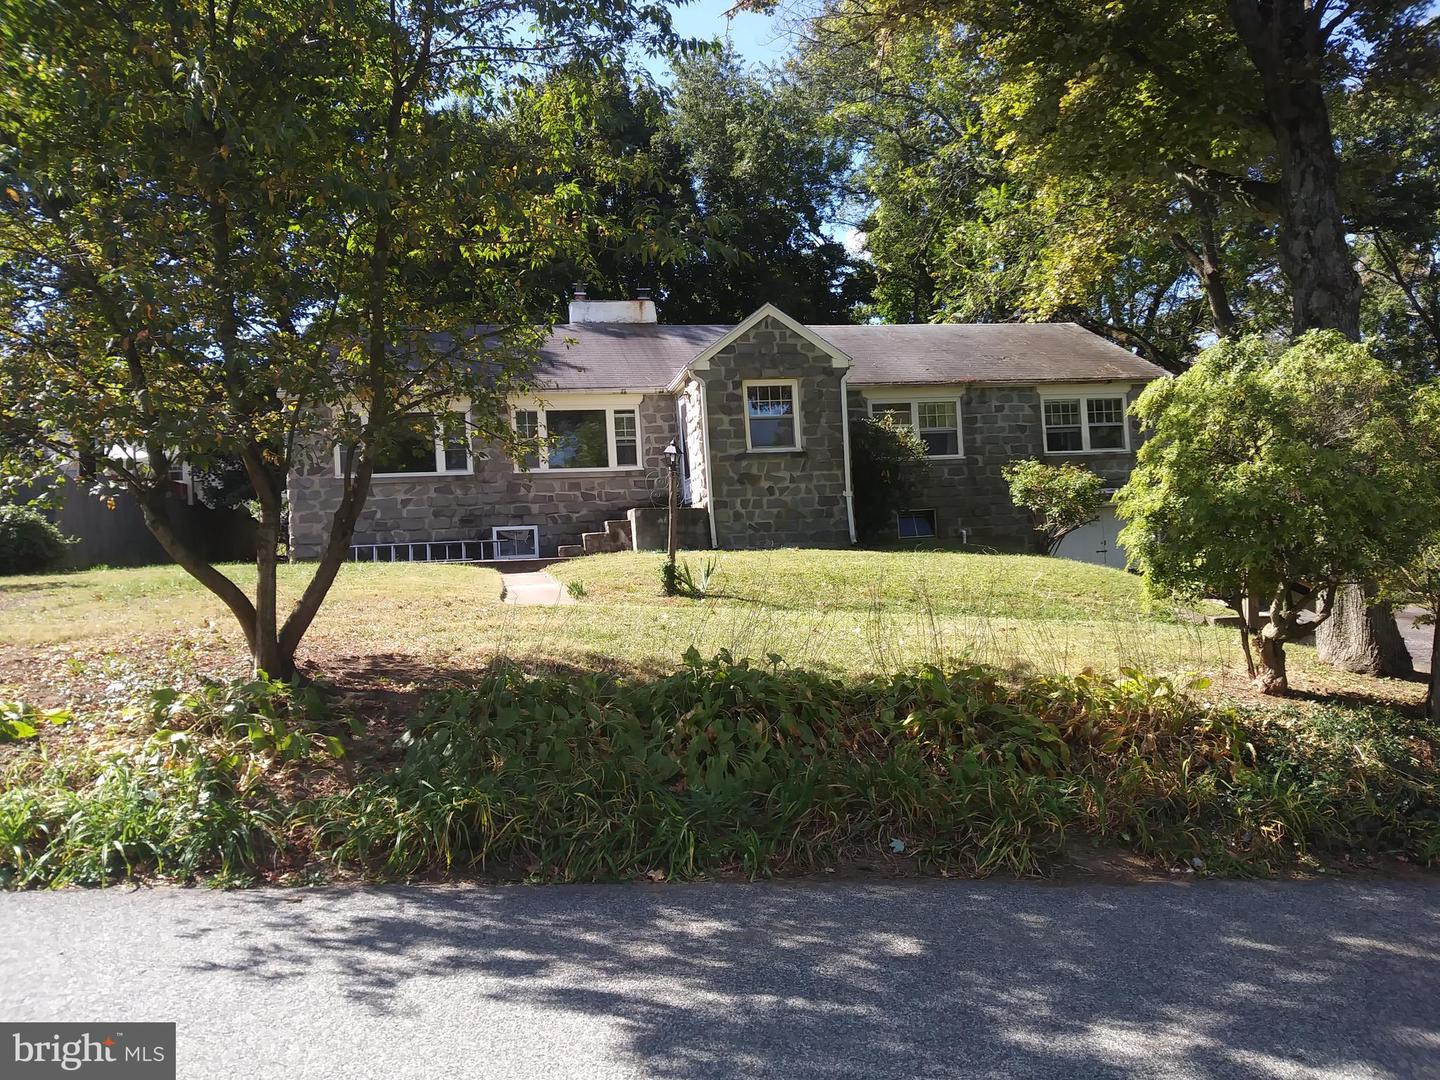 326 Georgia Lane West Chester, PA 19380